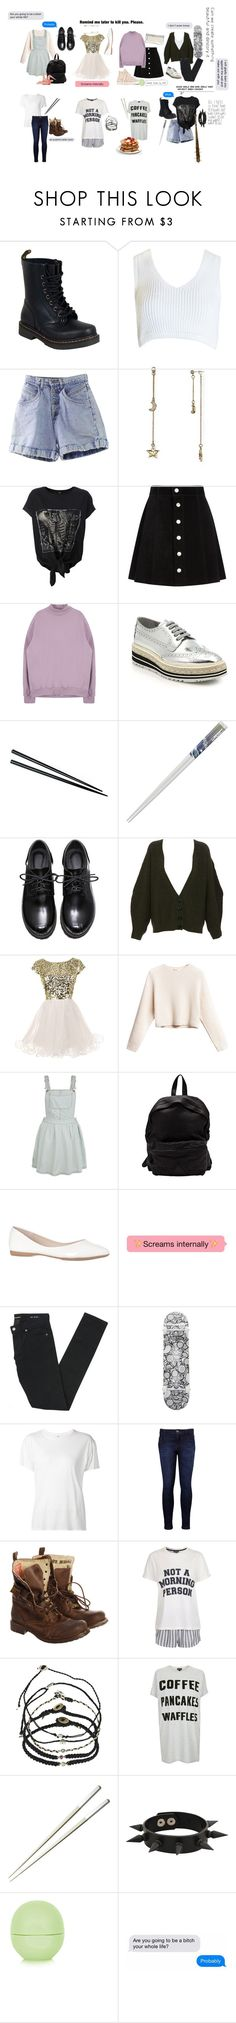 """""""Linie Zhong (OC)"""" by elliotchasesthestars ❤ liked on Polyvore featuring Dr. Martens, Sans Souci, ABS by Allen Schwartz, AG Adriano Goldschmied, Prada, Fuji, STELLA McCARTNEY, Officine Creative, Unis and Yves Saint Laurent"""